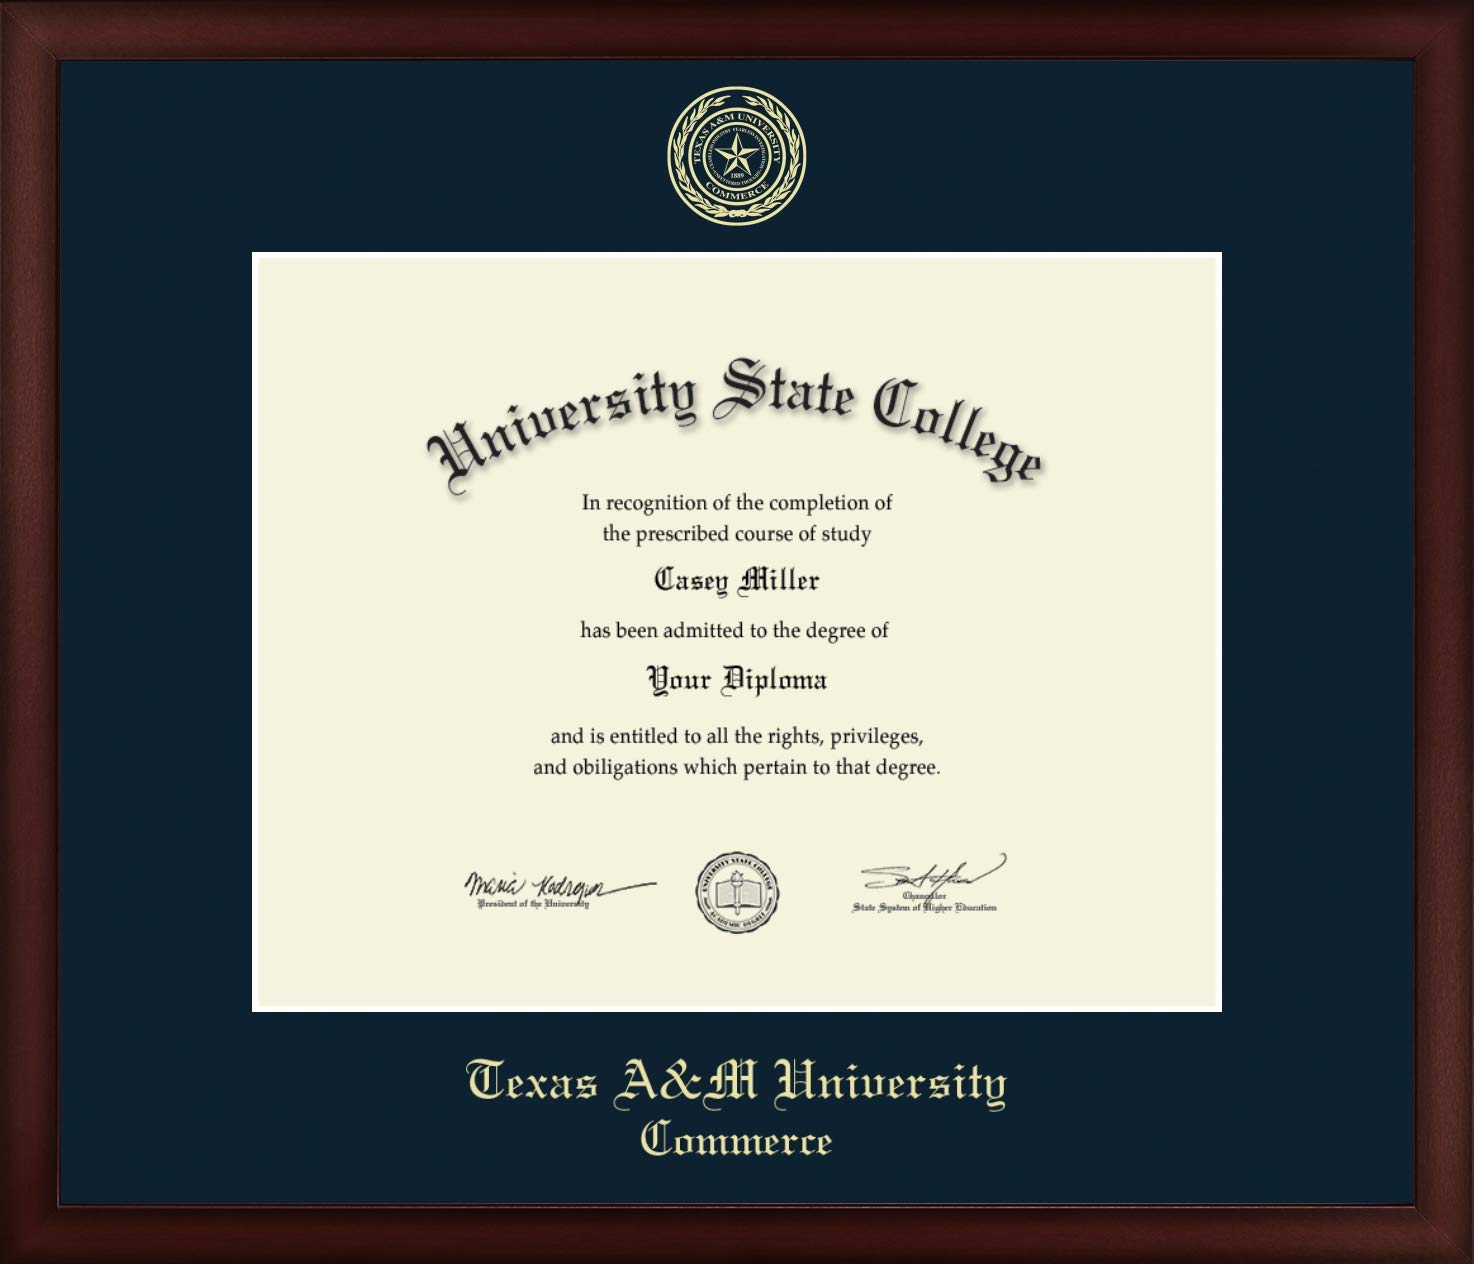 Texas A&M University - Commerce - Officially Licensed - Gold Embossed Diploma Frame - Diploma Size 14'' x 11''